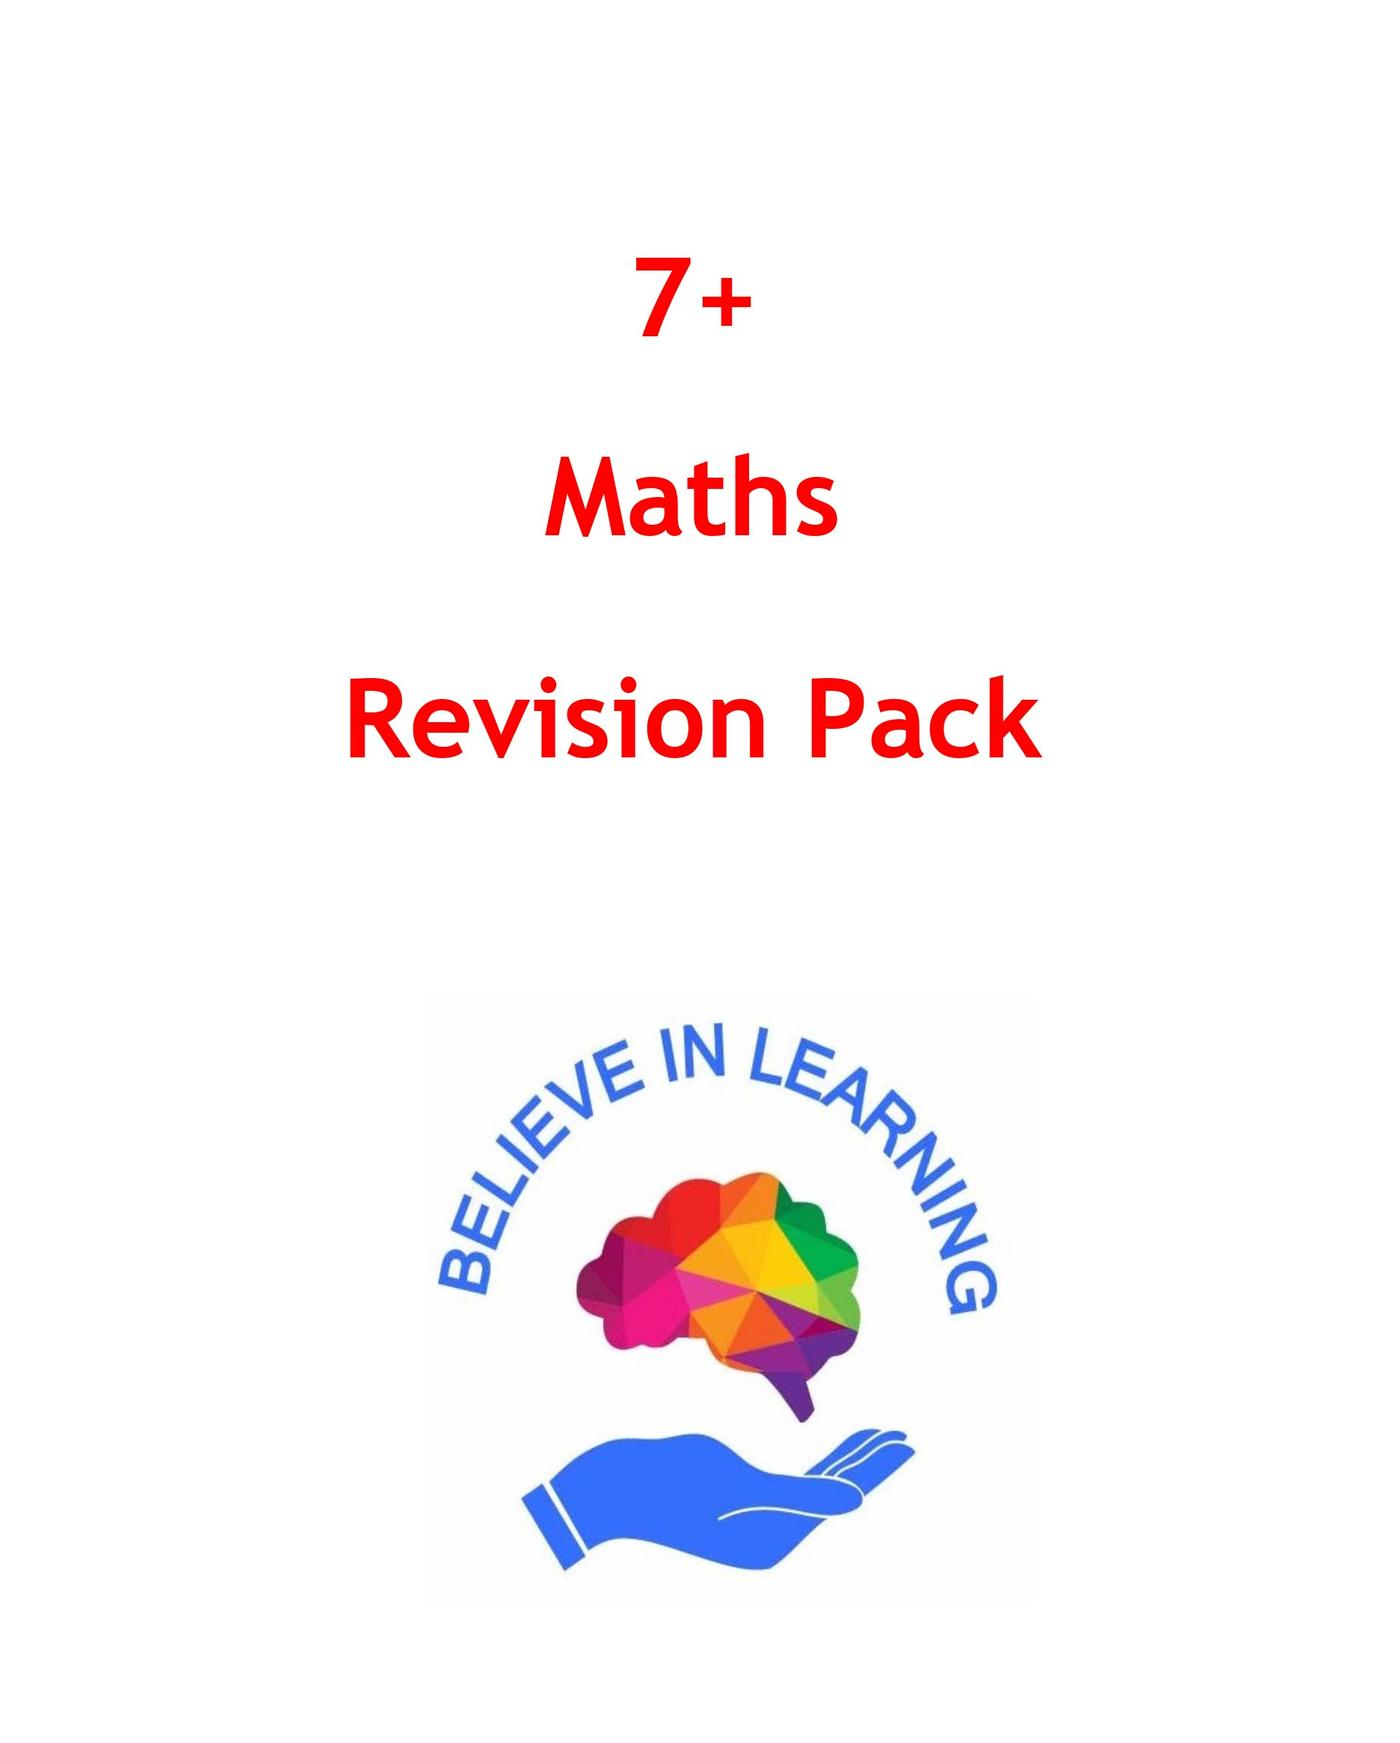 7+ Maths Revision Pack